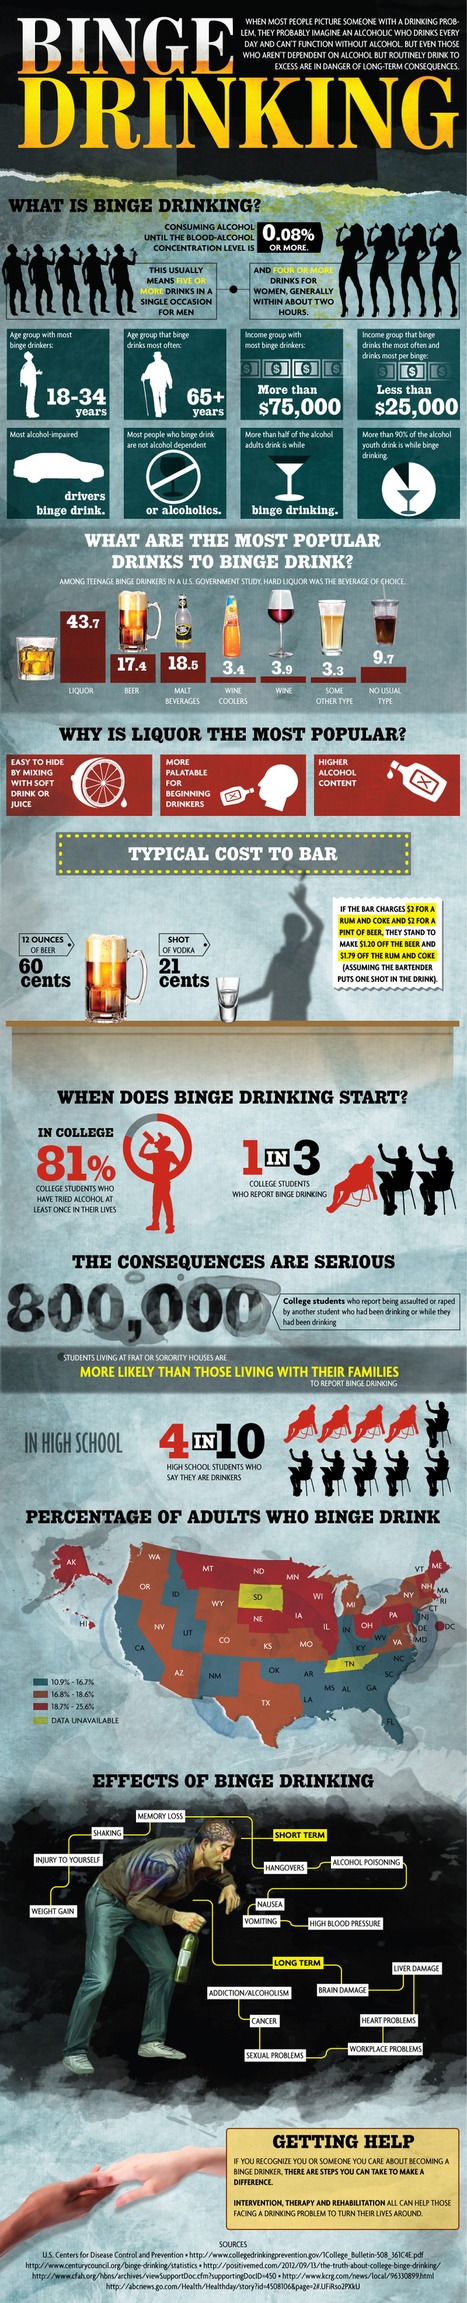 Addiction Infographic: What is Binge Drinking | Doms yr9 Journal | Scoop.it